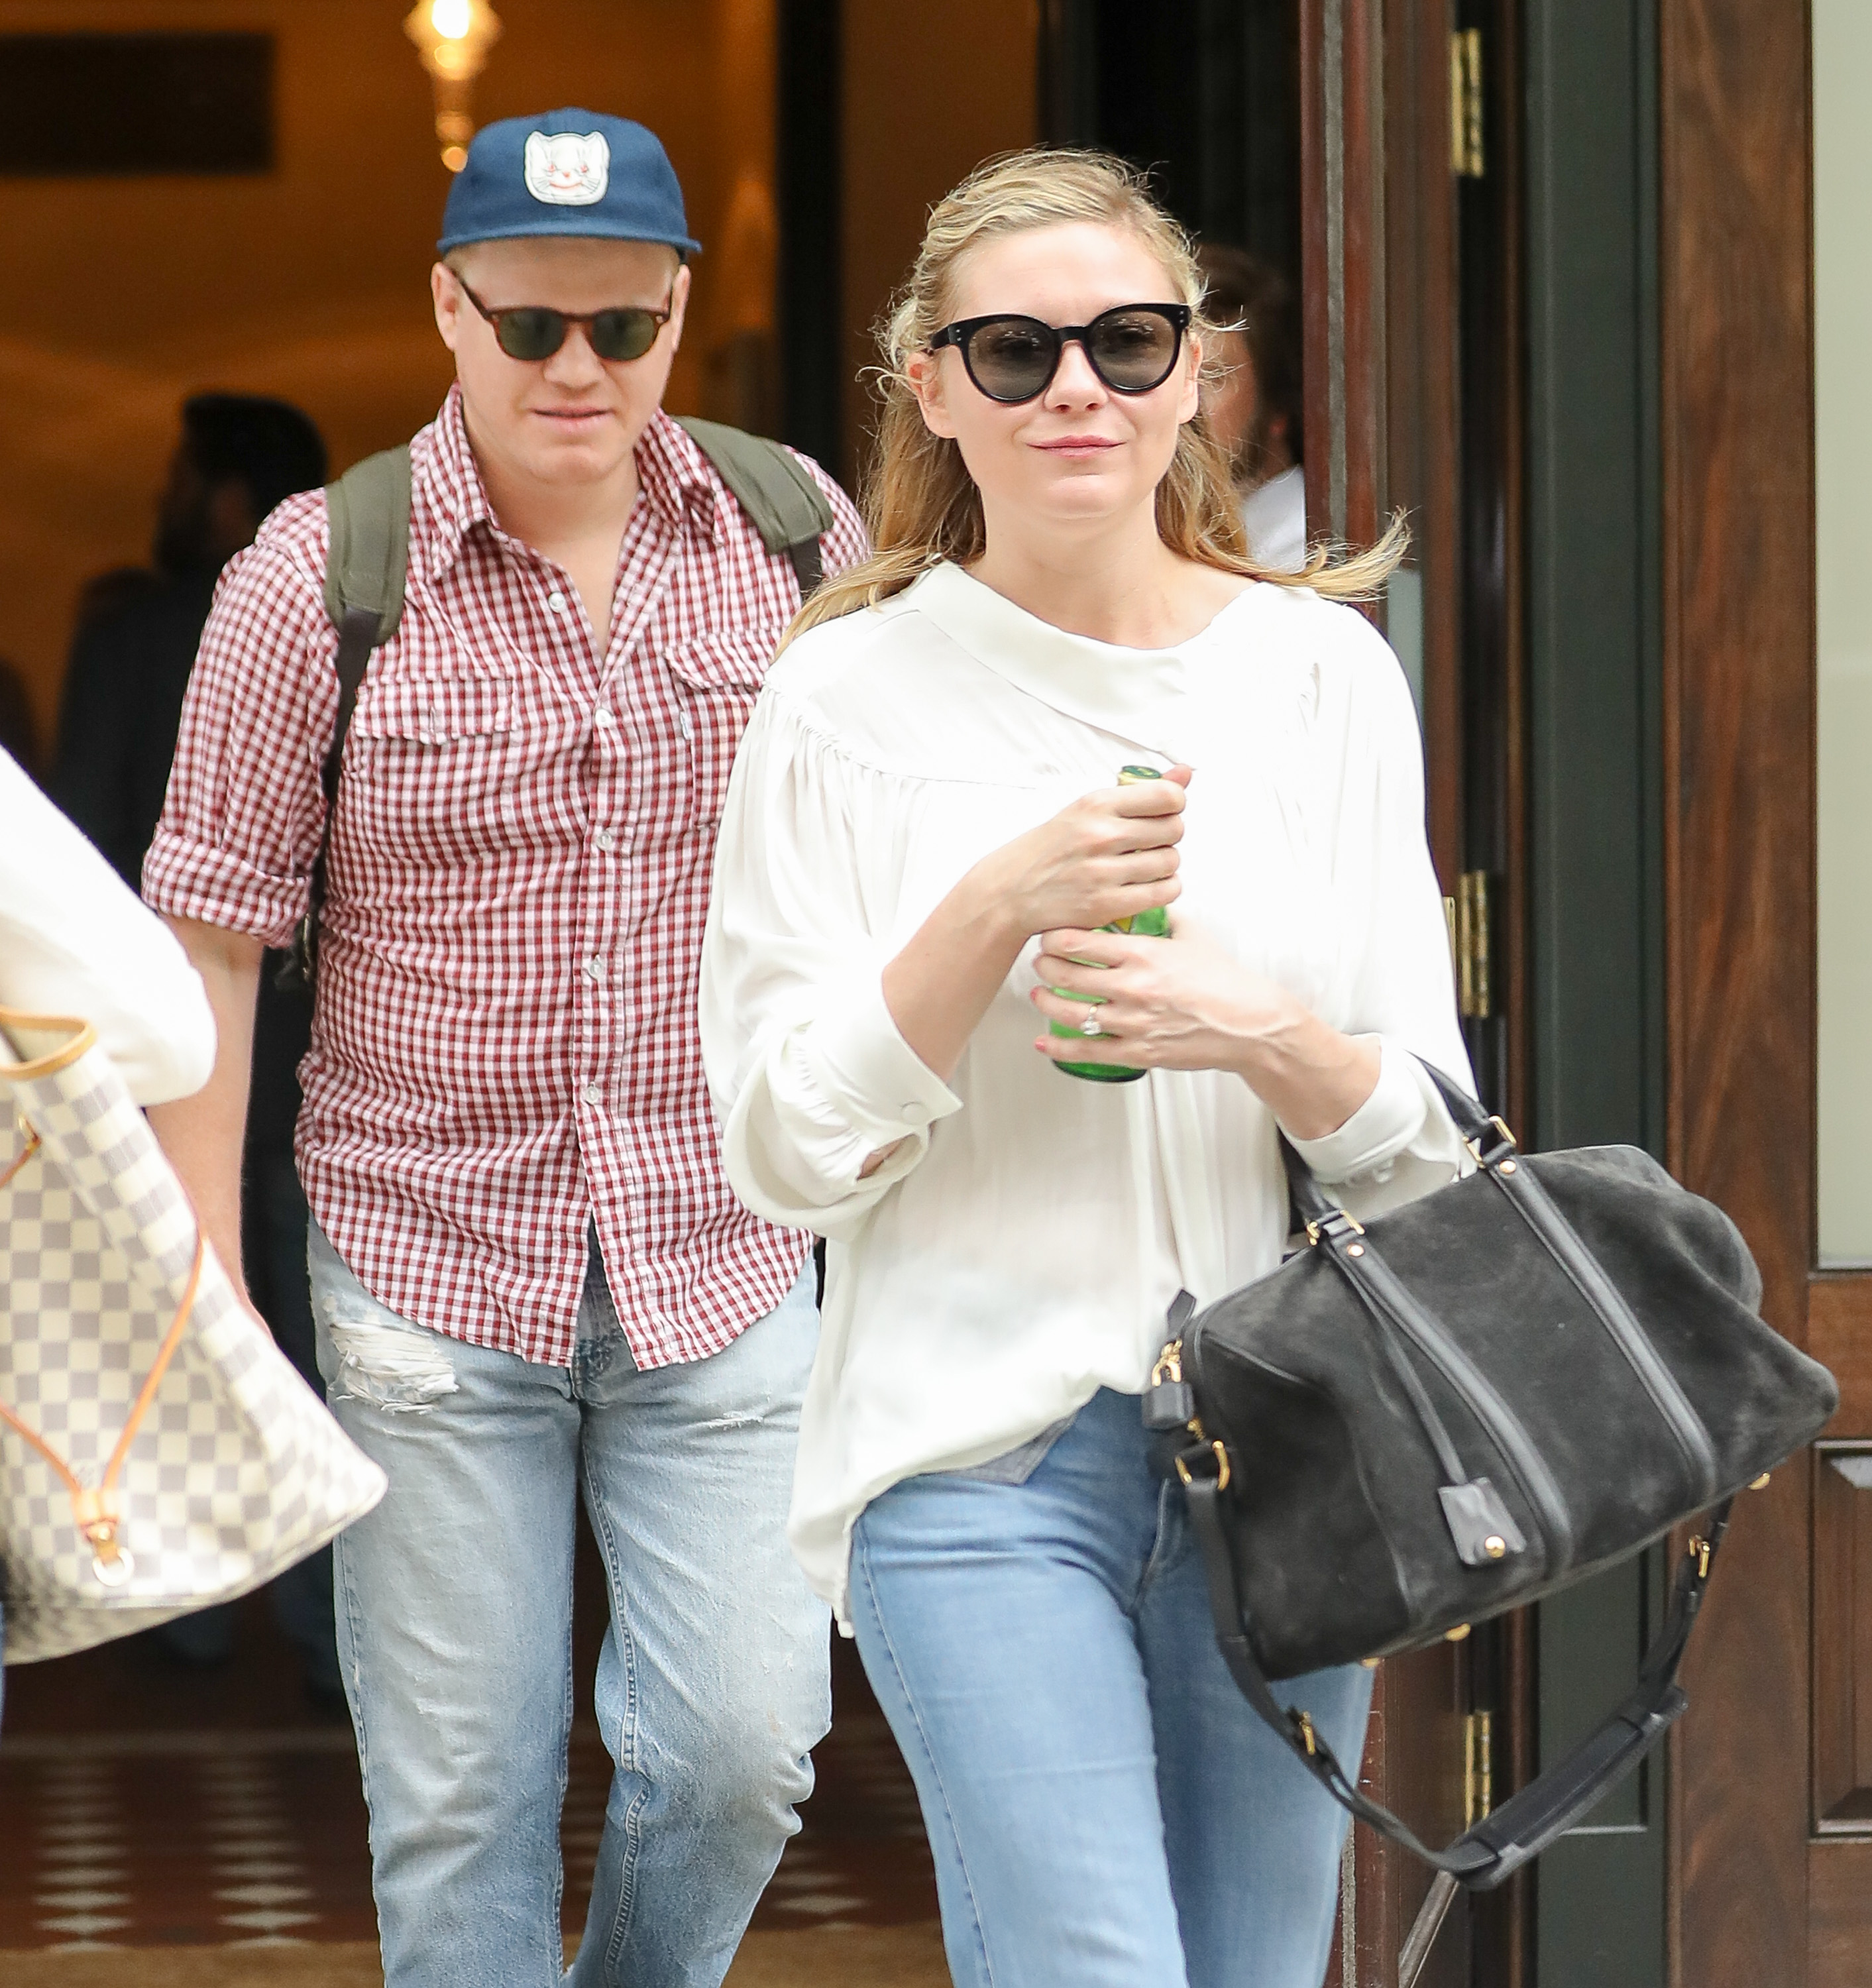 Kirsten Dunst and fiance Jesse Plemons are spotted leaving their hotel in New York City, New York. <P> Pictured: Kirsten Dunst and Jesse Plemons <B>Ref: SPL1525762  230617  </B><BR/> Picture by: Felipe Ramales / Splash News<BR/> </P><P> <B>Splash News and Pictures</B><BR/> Los Angeles:	310-821-2666<BR/> New York:	212-619-2666<BR/> London:	870-934-2666<BR/> <span id=